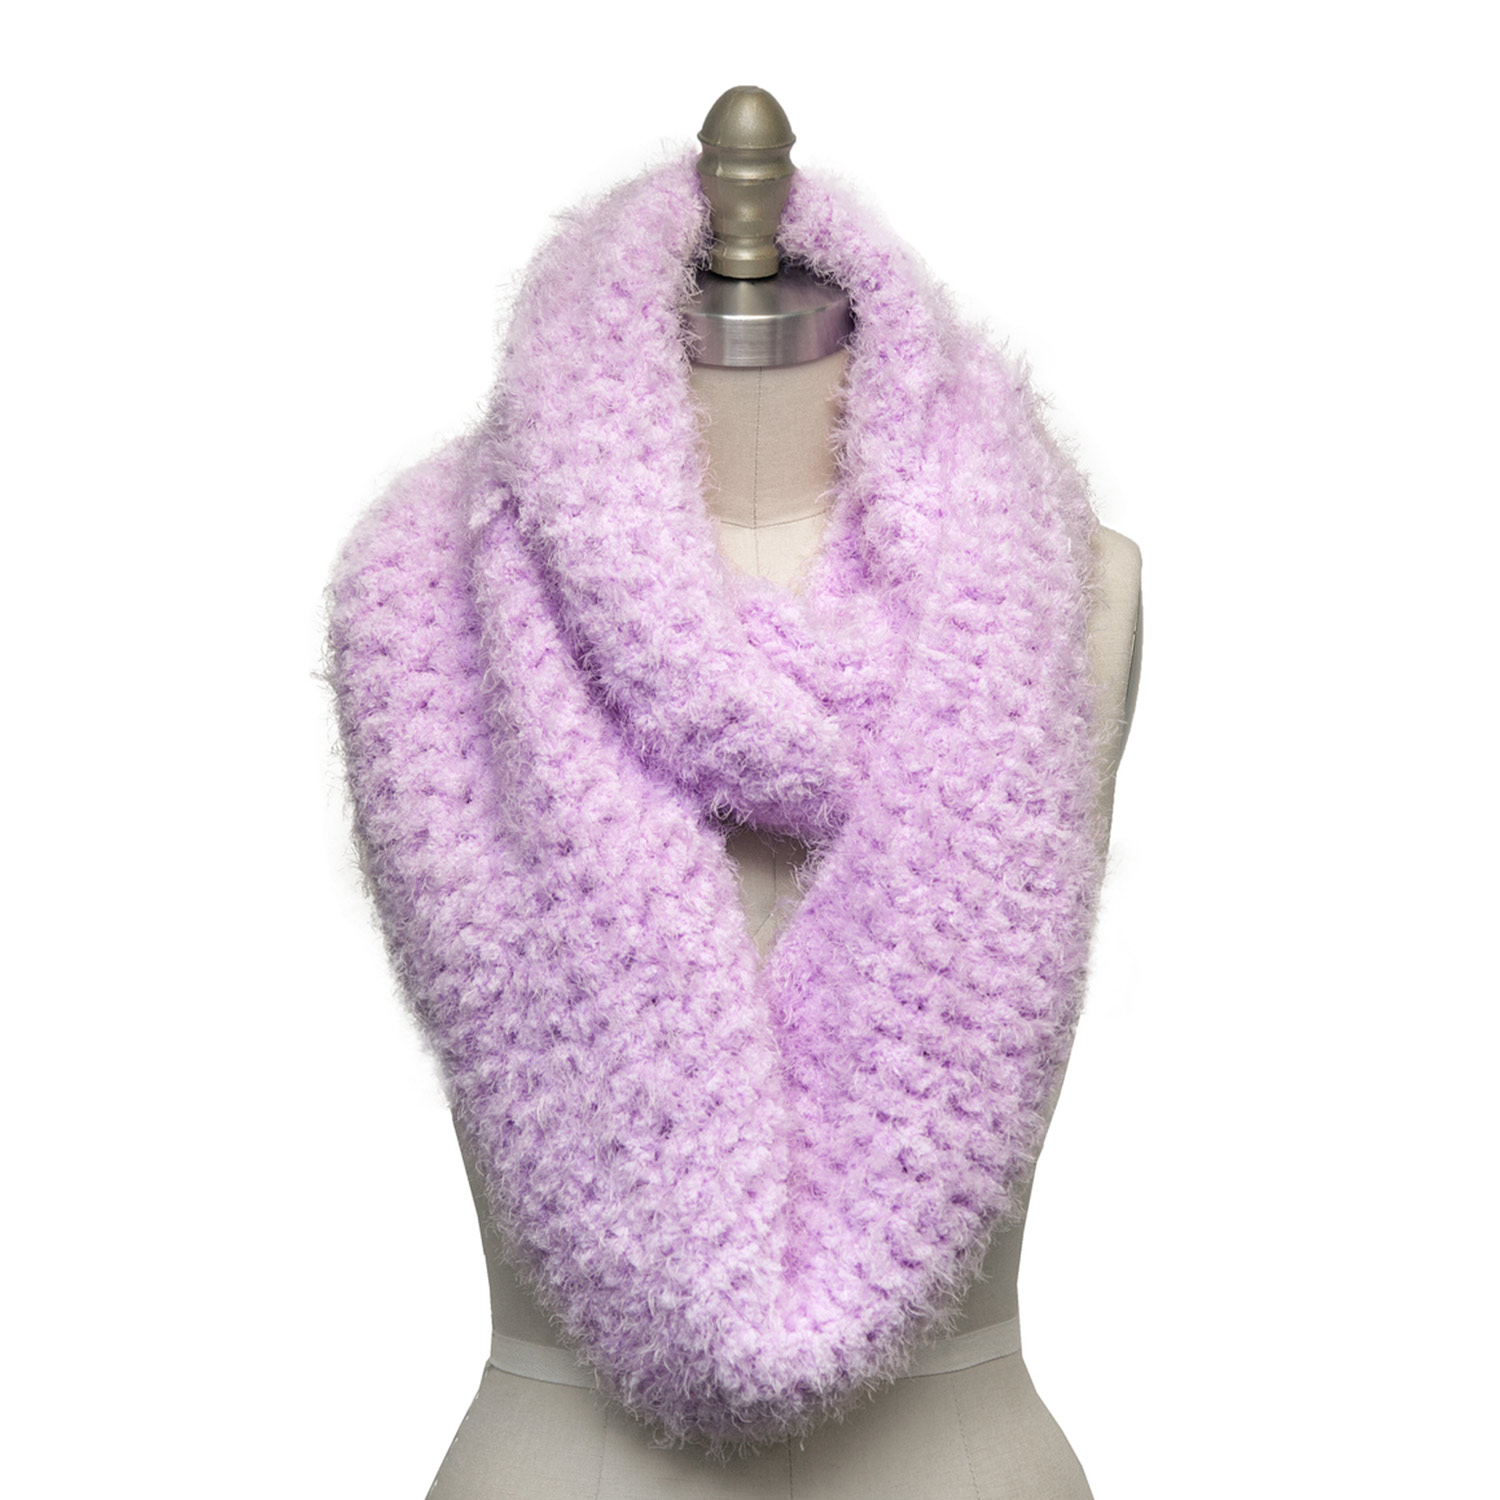 Finished crocheted infinity scarf in pink Boa